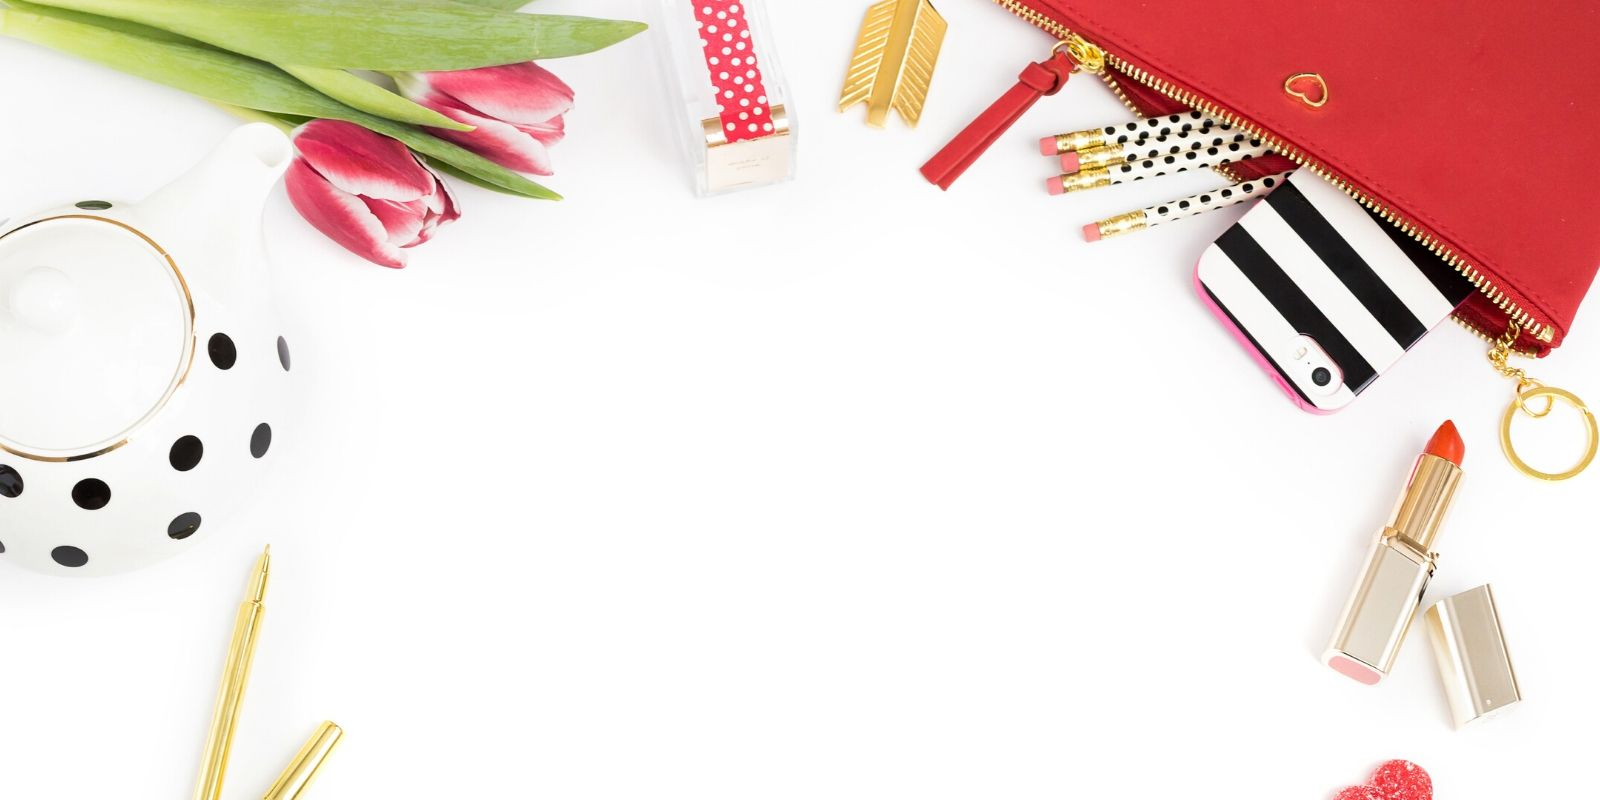 White desktop with red tulips, red pencil case, a cell phone with a black and white striped cover, red lipstick, and a polka dotted teapot